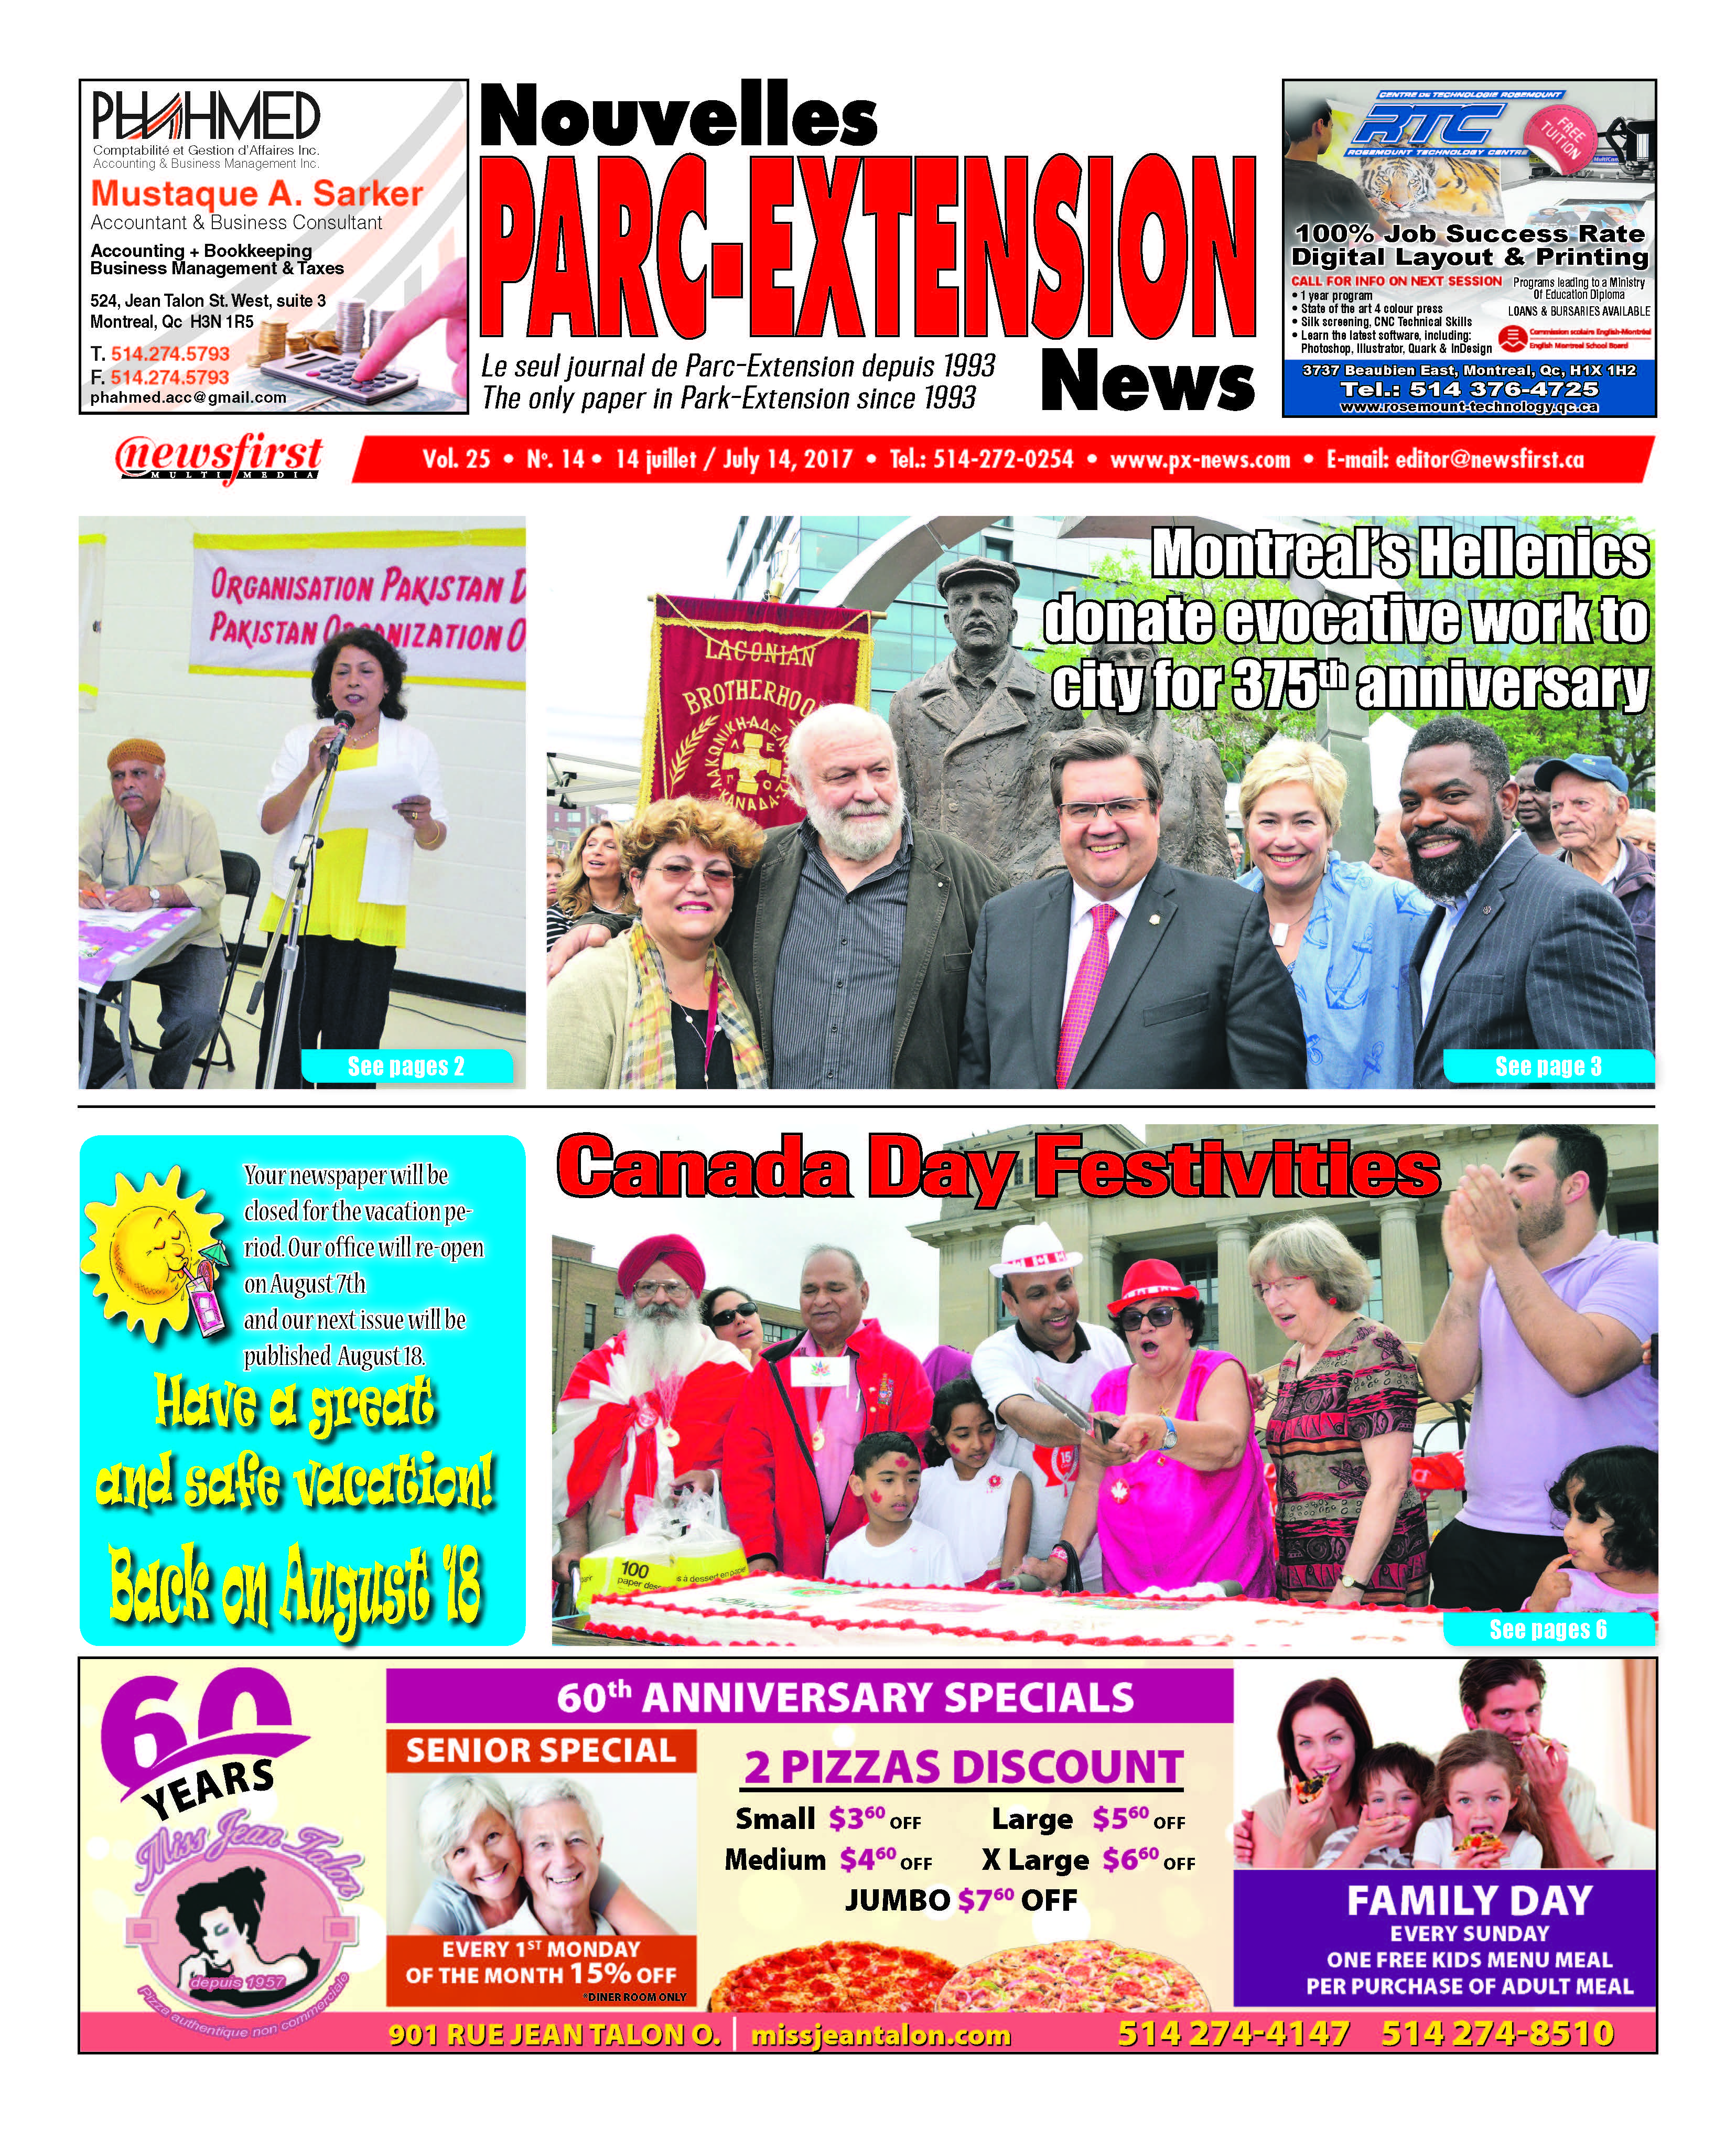 Front page image of the Parc-Extension News Volume 25-14